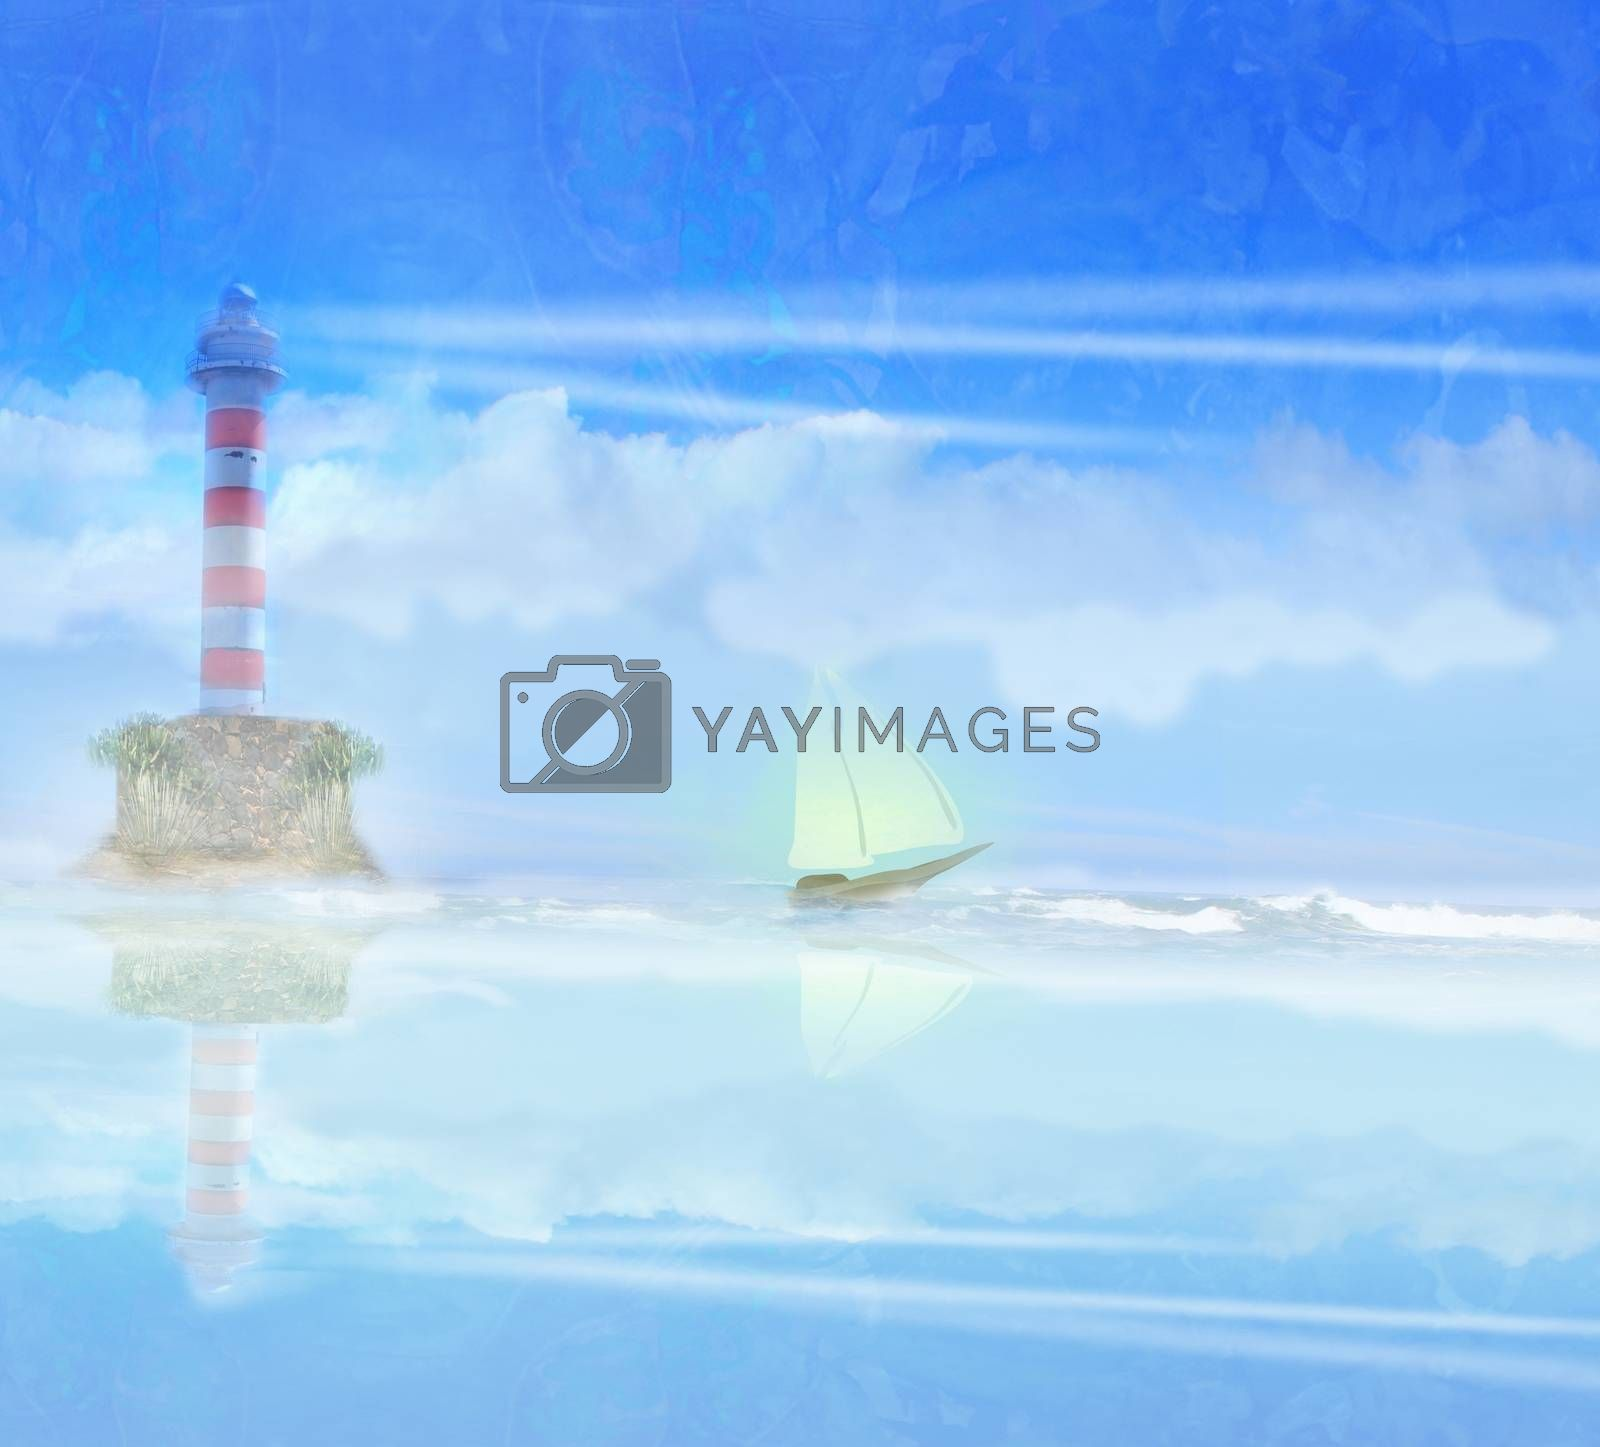 Royalty free image of Lighthouse and sailboat illustration by JackyBrown